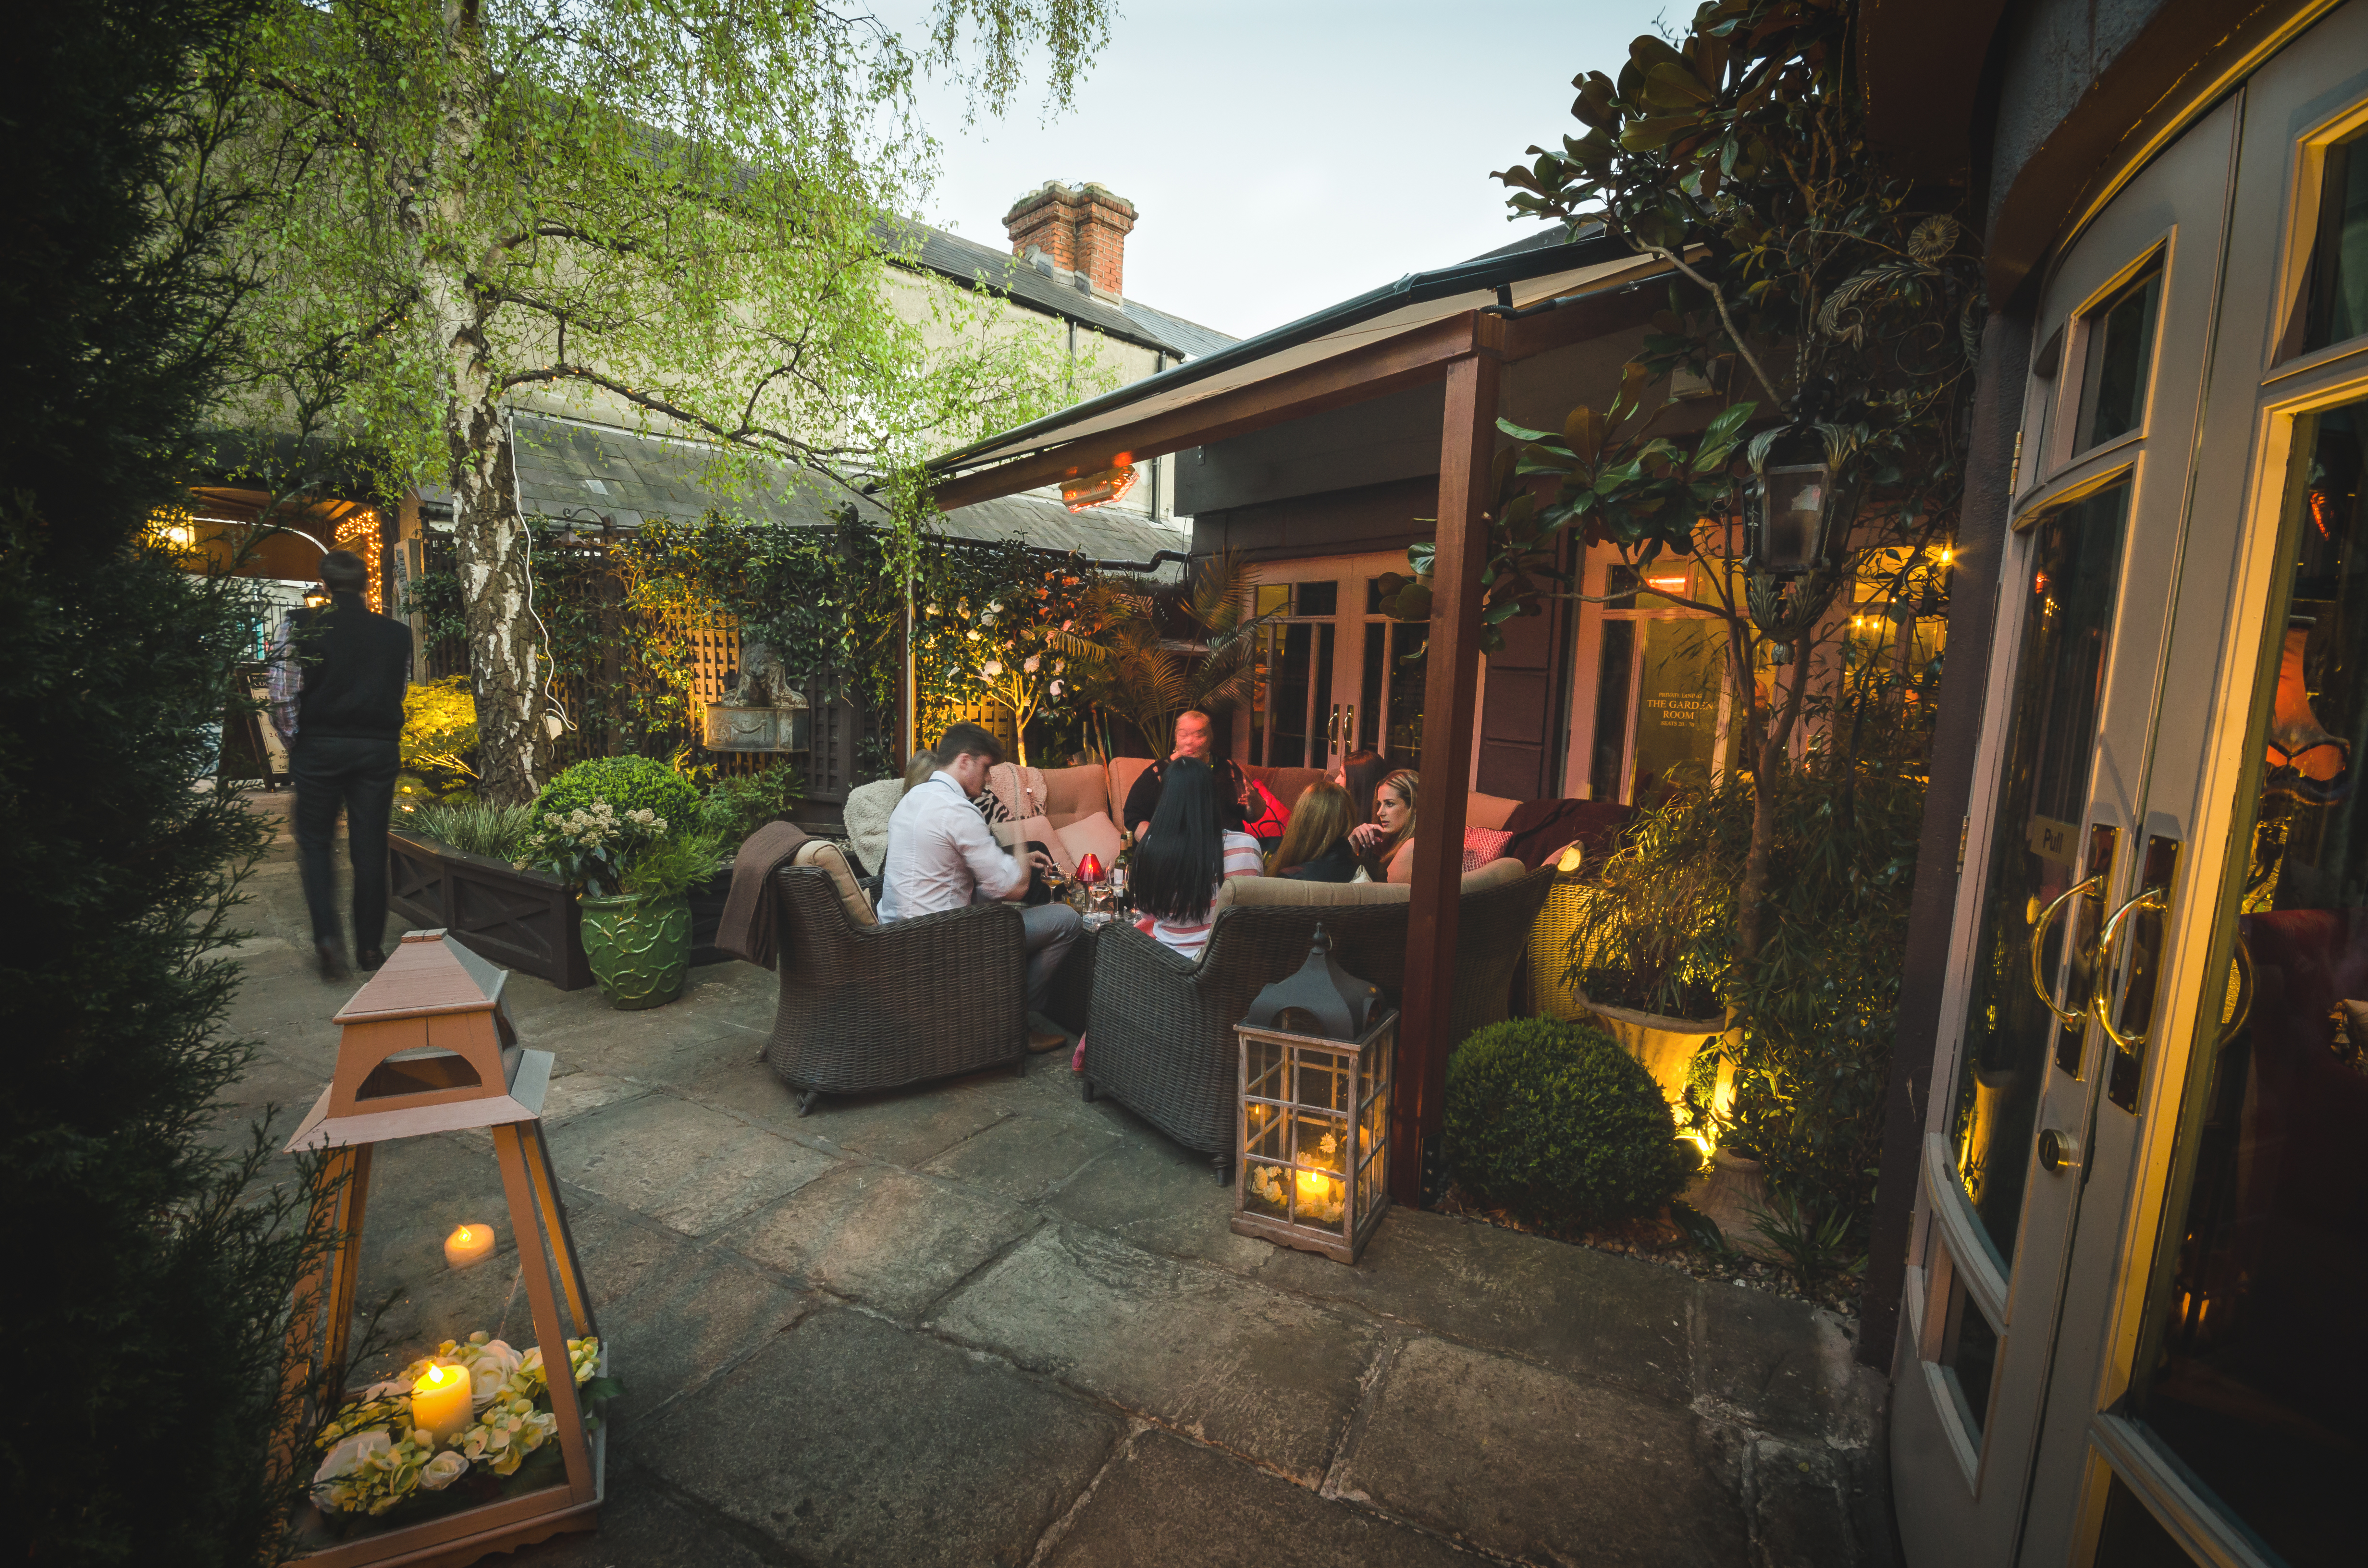 Marco Pierre White Courtyard Bar and Grill, Donnybrook Dublin Ireland